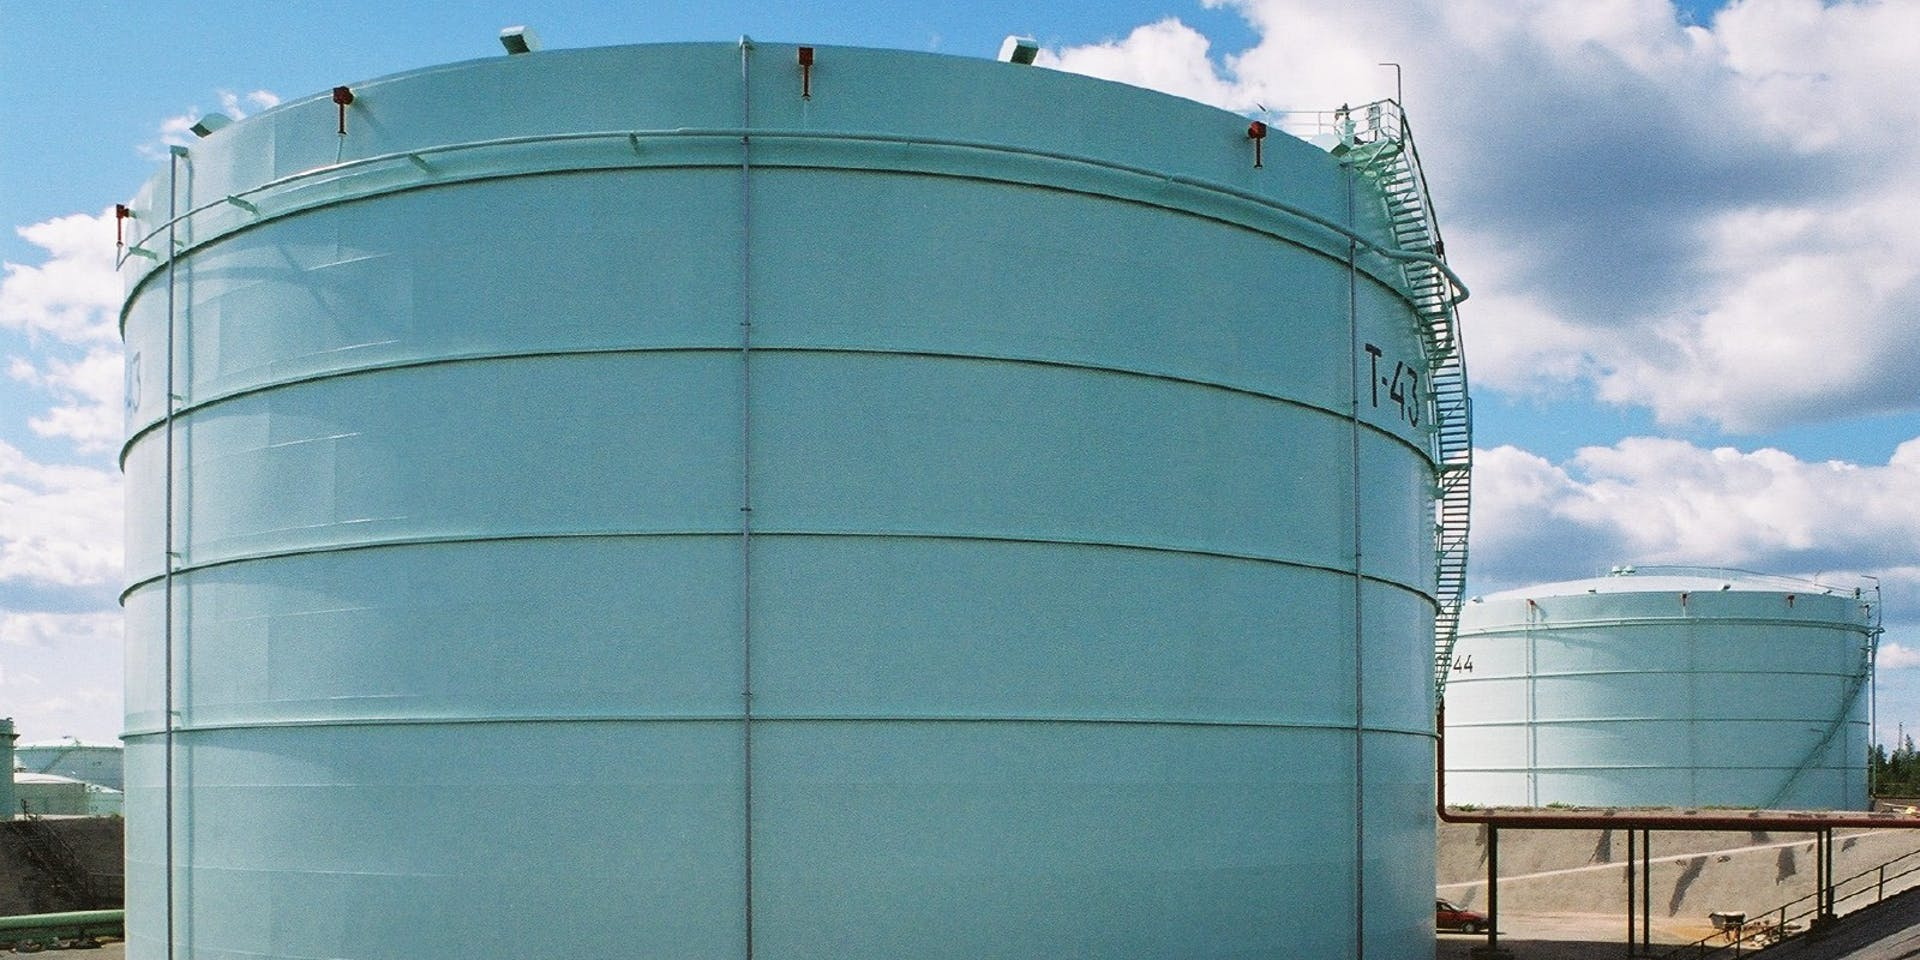 Exterior Steel Surfaces - Storage Tanks and Reservoirs Hero Image